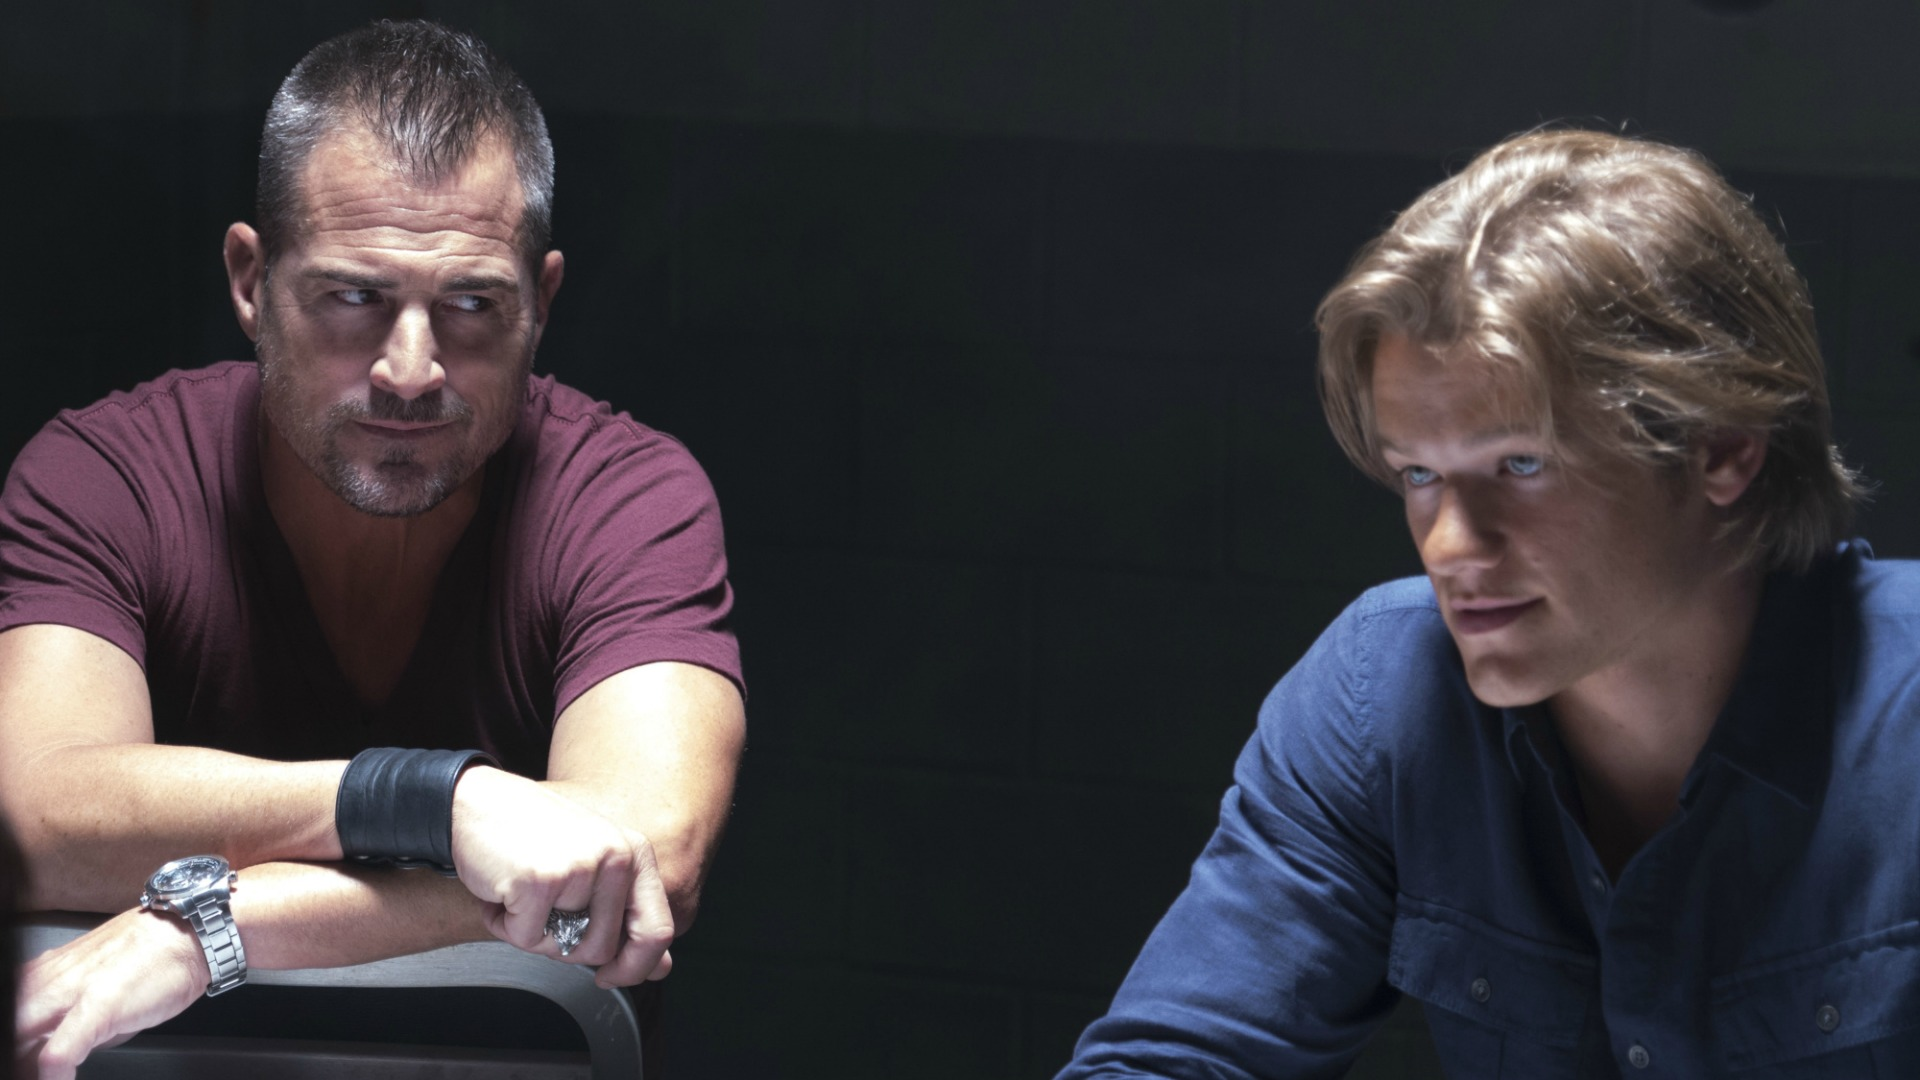 Jack and MacGyver sit down for an interrogation.